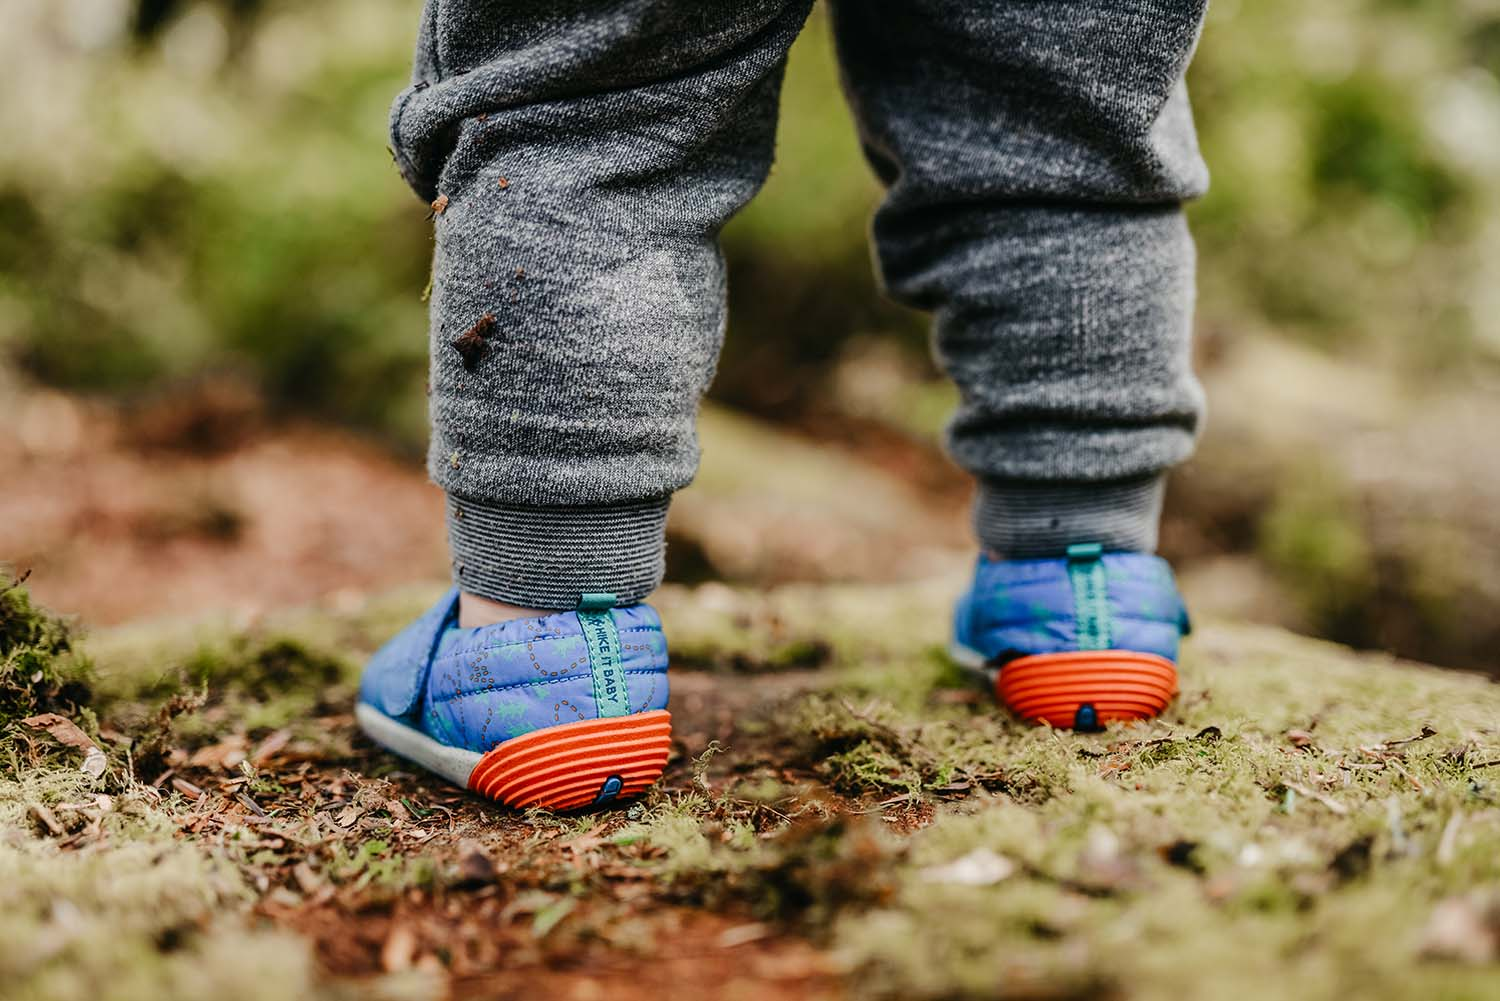 MERRELL LITTLE KID'S BARE STEPSⓇ HUT MOC IN EXCLUSIVE HIKE IT BABY DESIGN